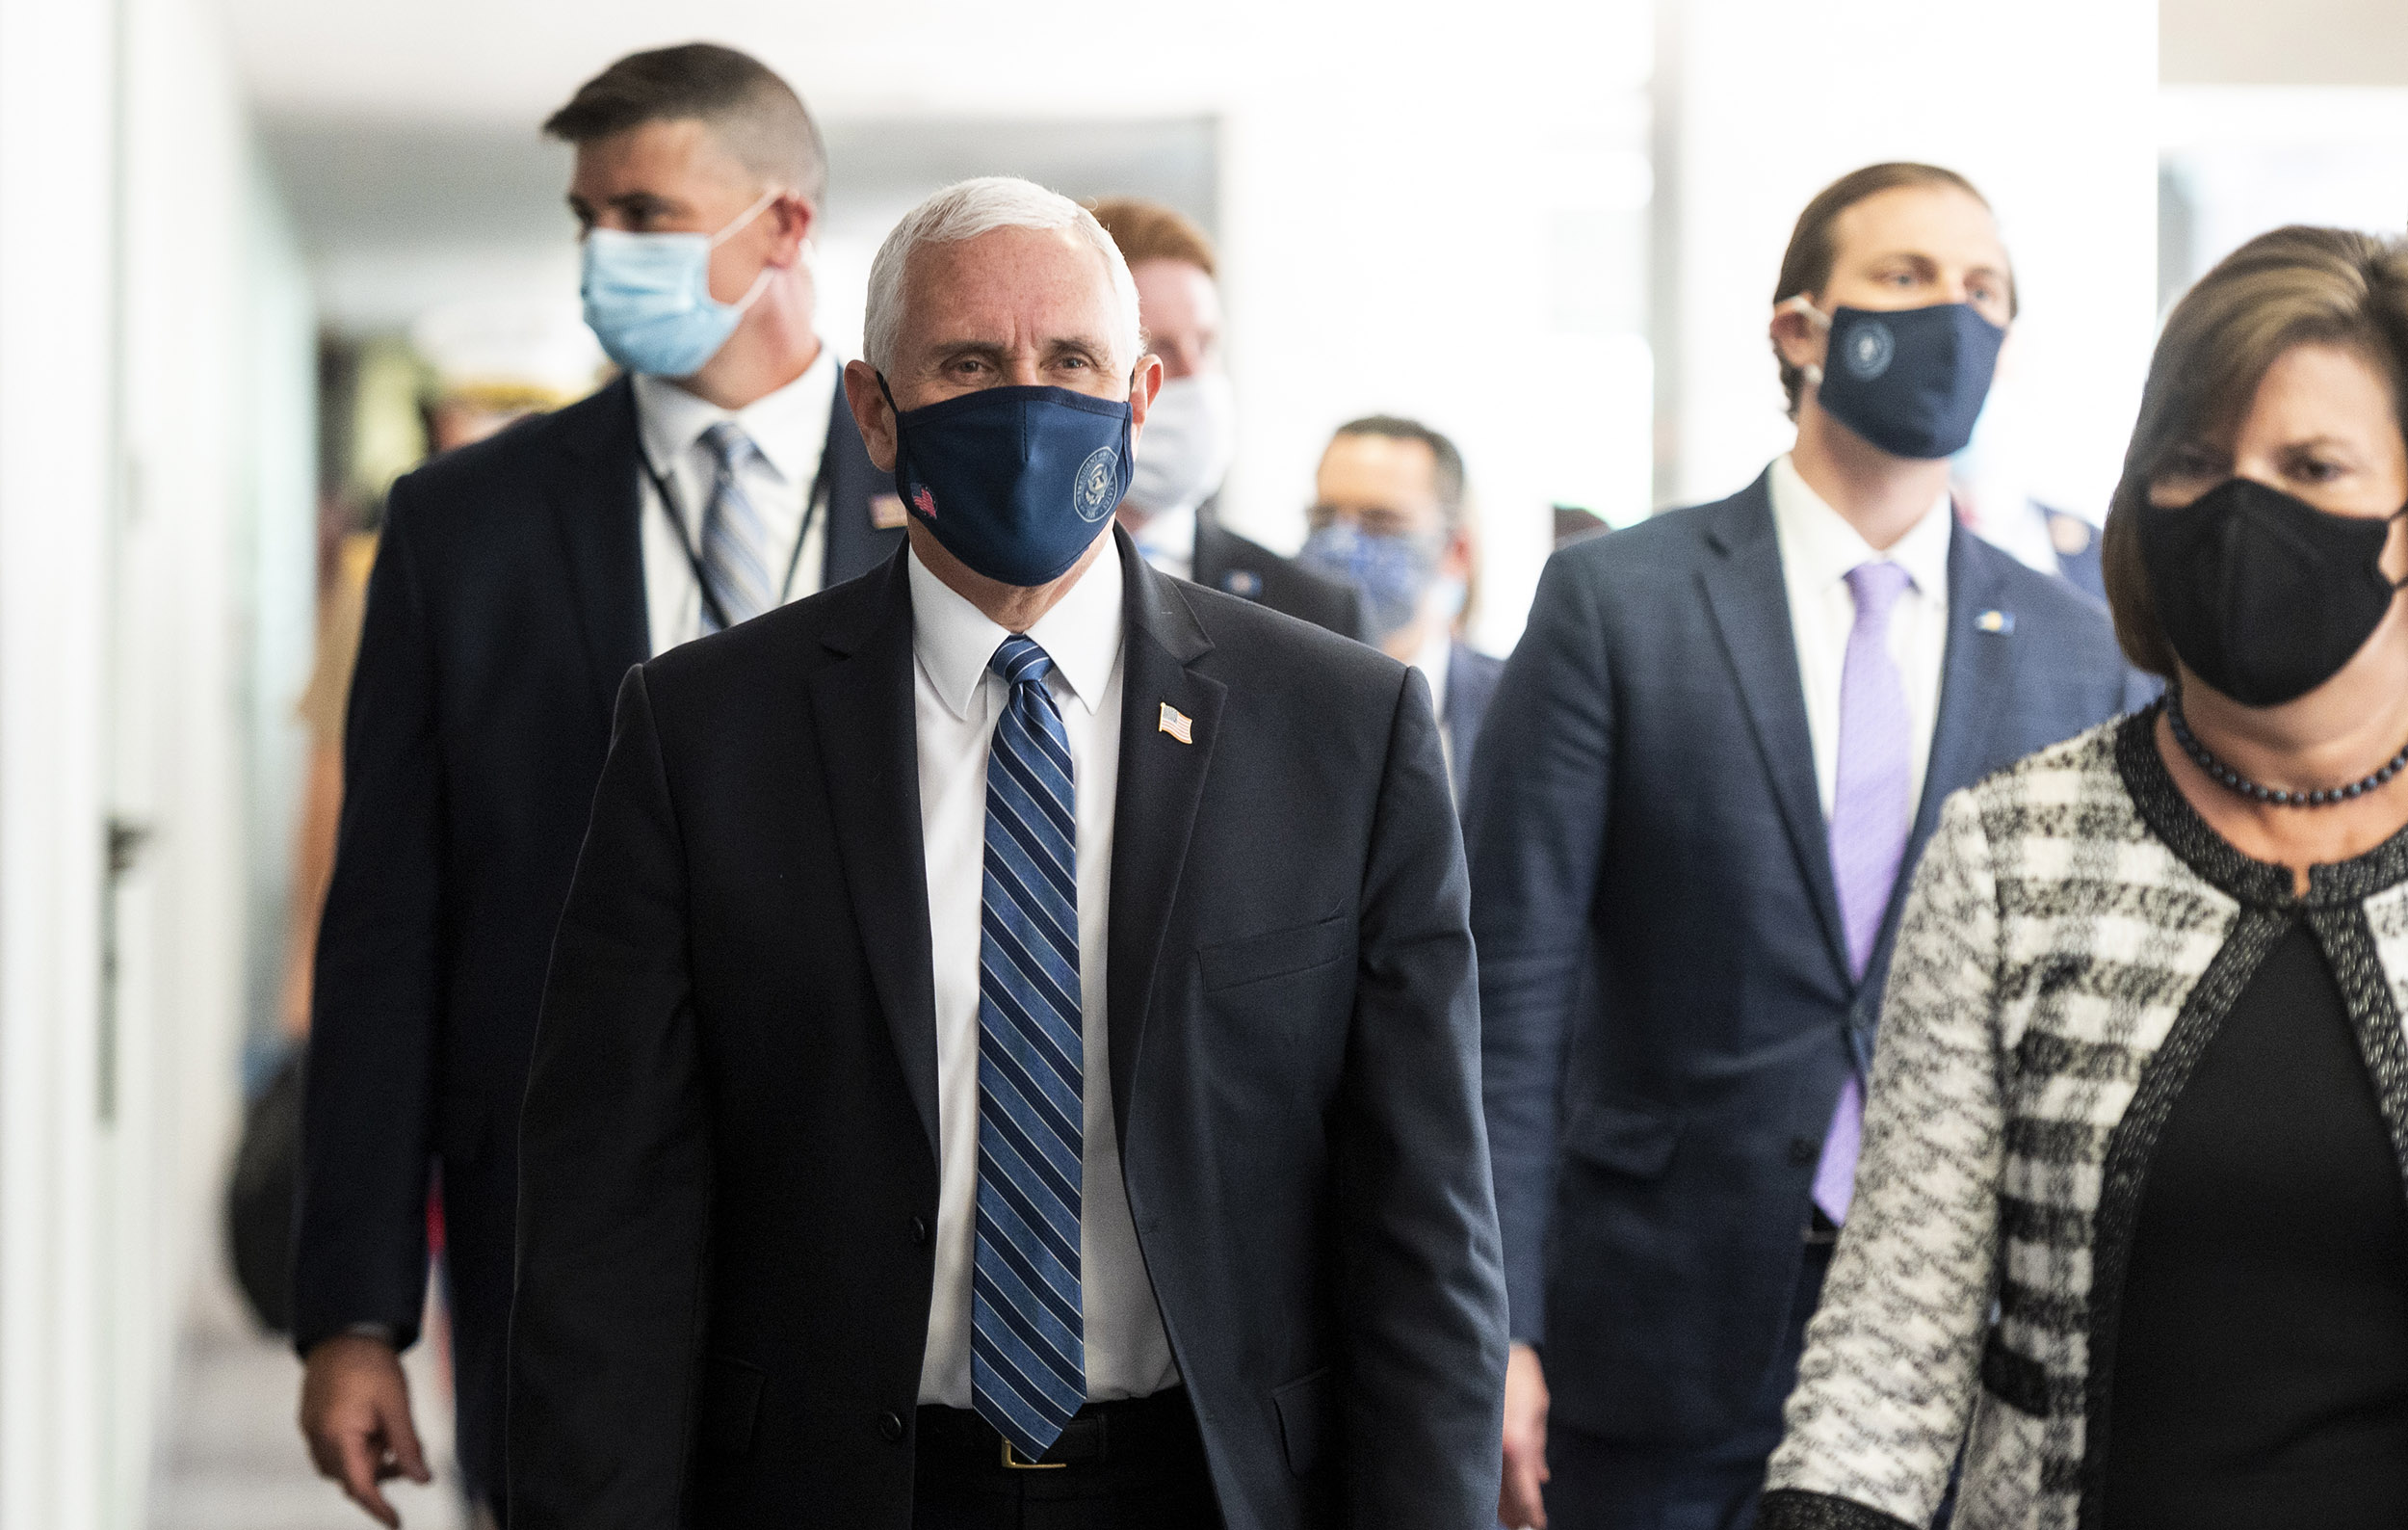 Vice President Mike Pence arrives for the Senate Republicans' lunch in the Hart Senate Office Building on Wednesday, June 24, in Washington, DC.